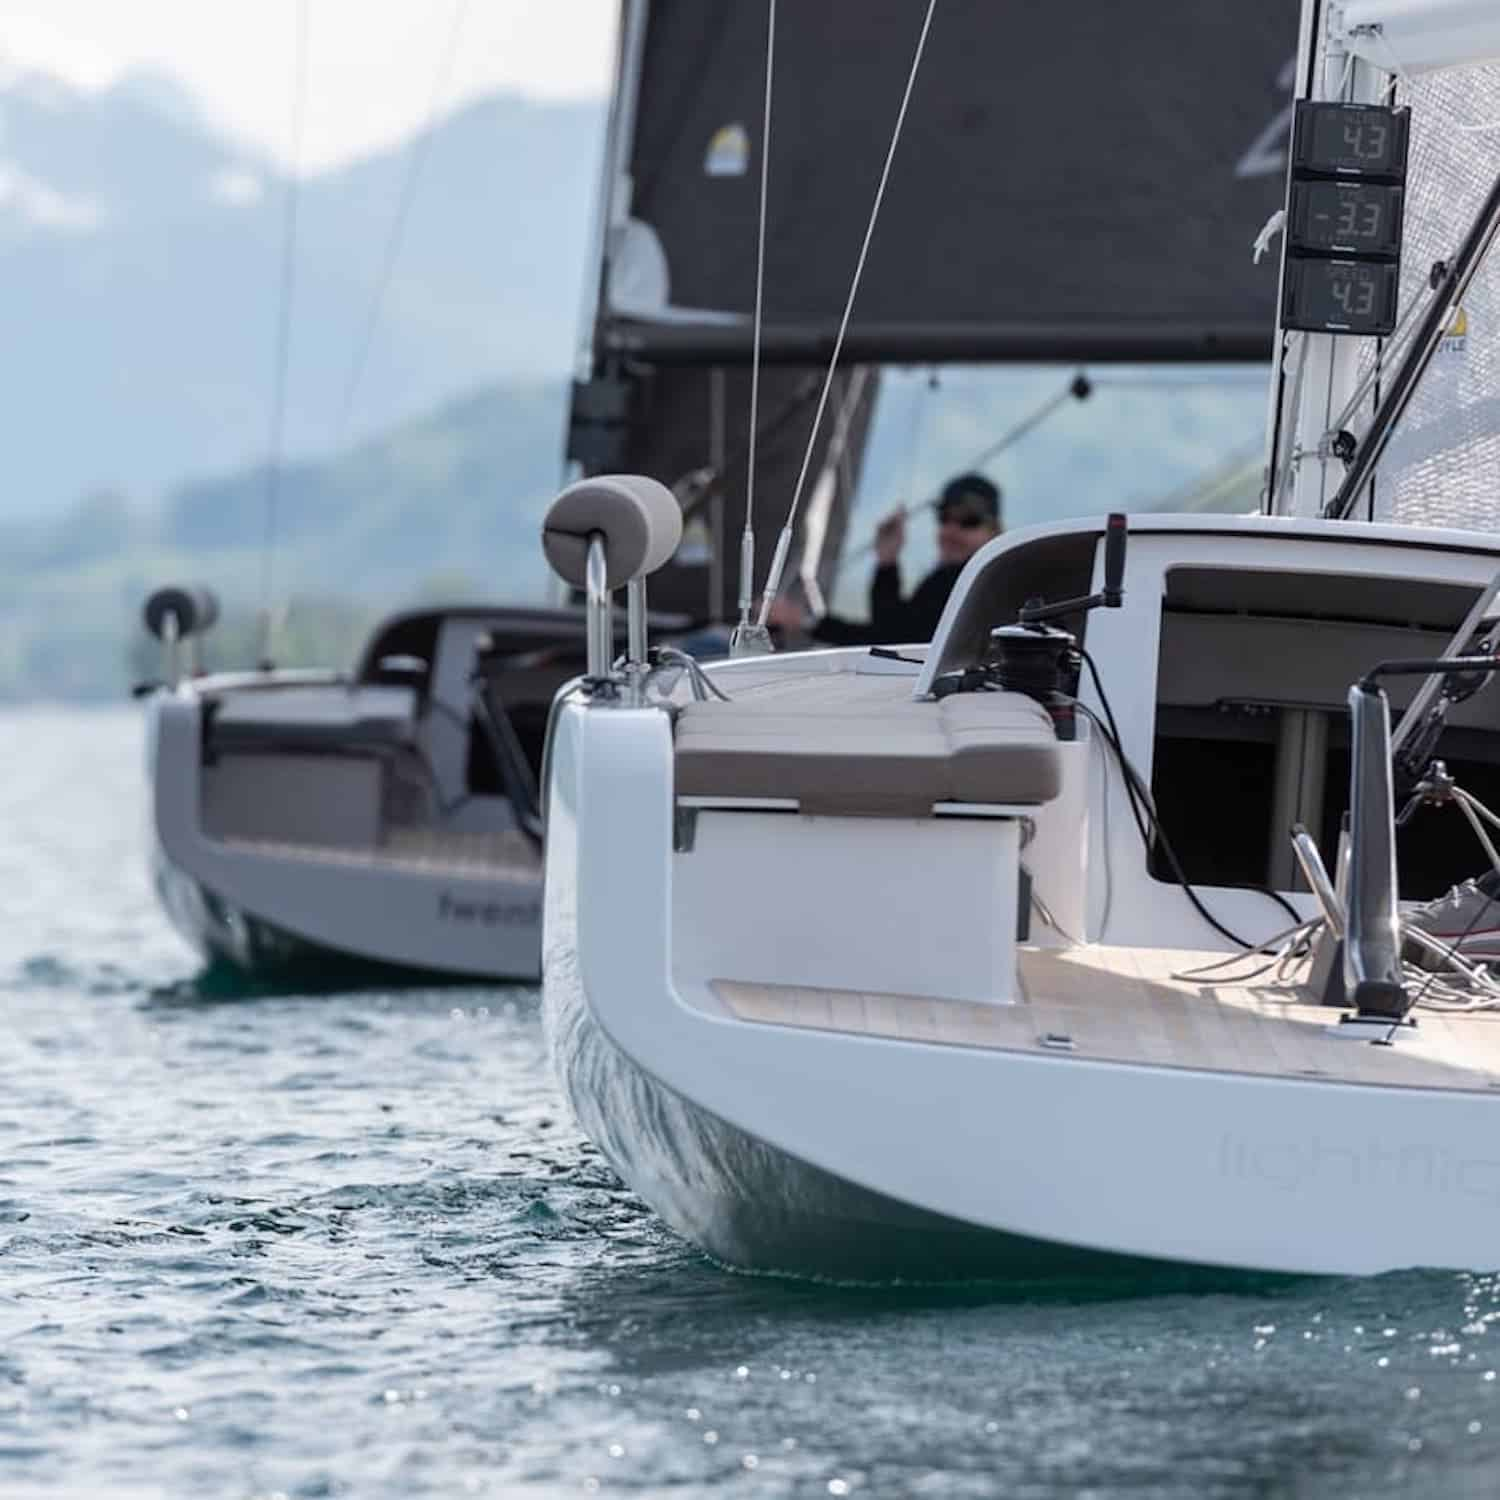 A-Yachts a27 daysailer sailing boat yacht solar system panels walkable deck-mounted